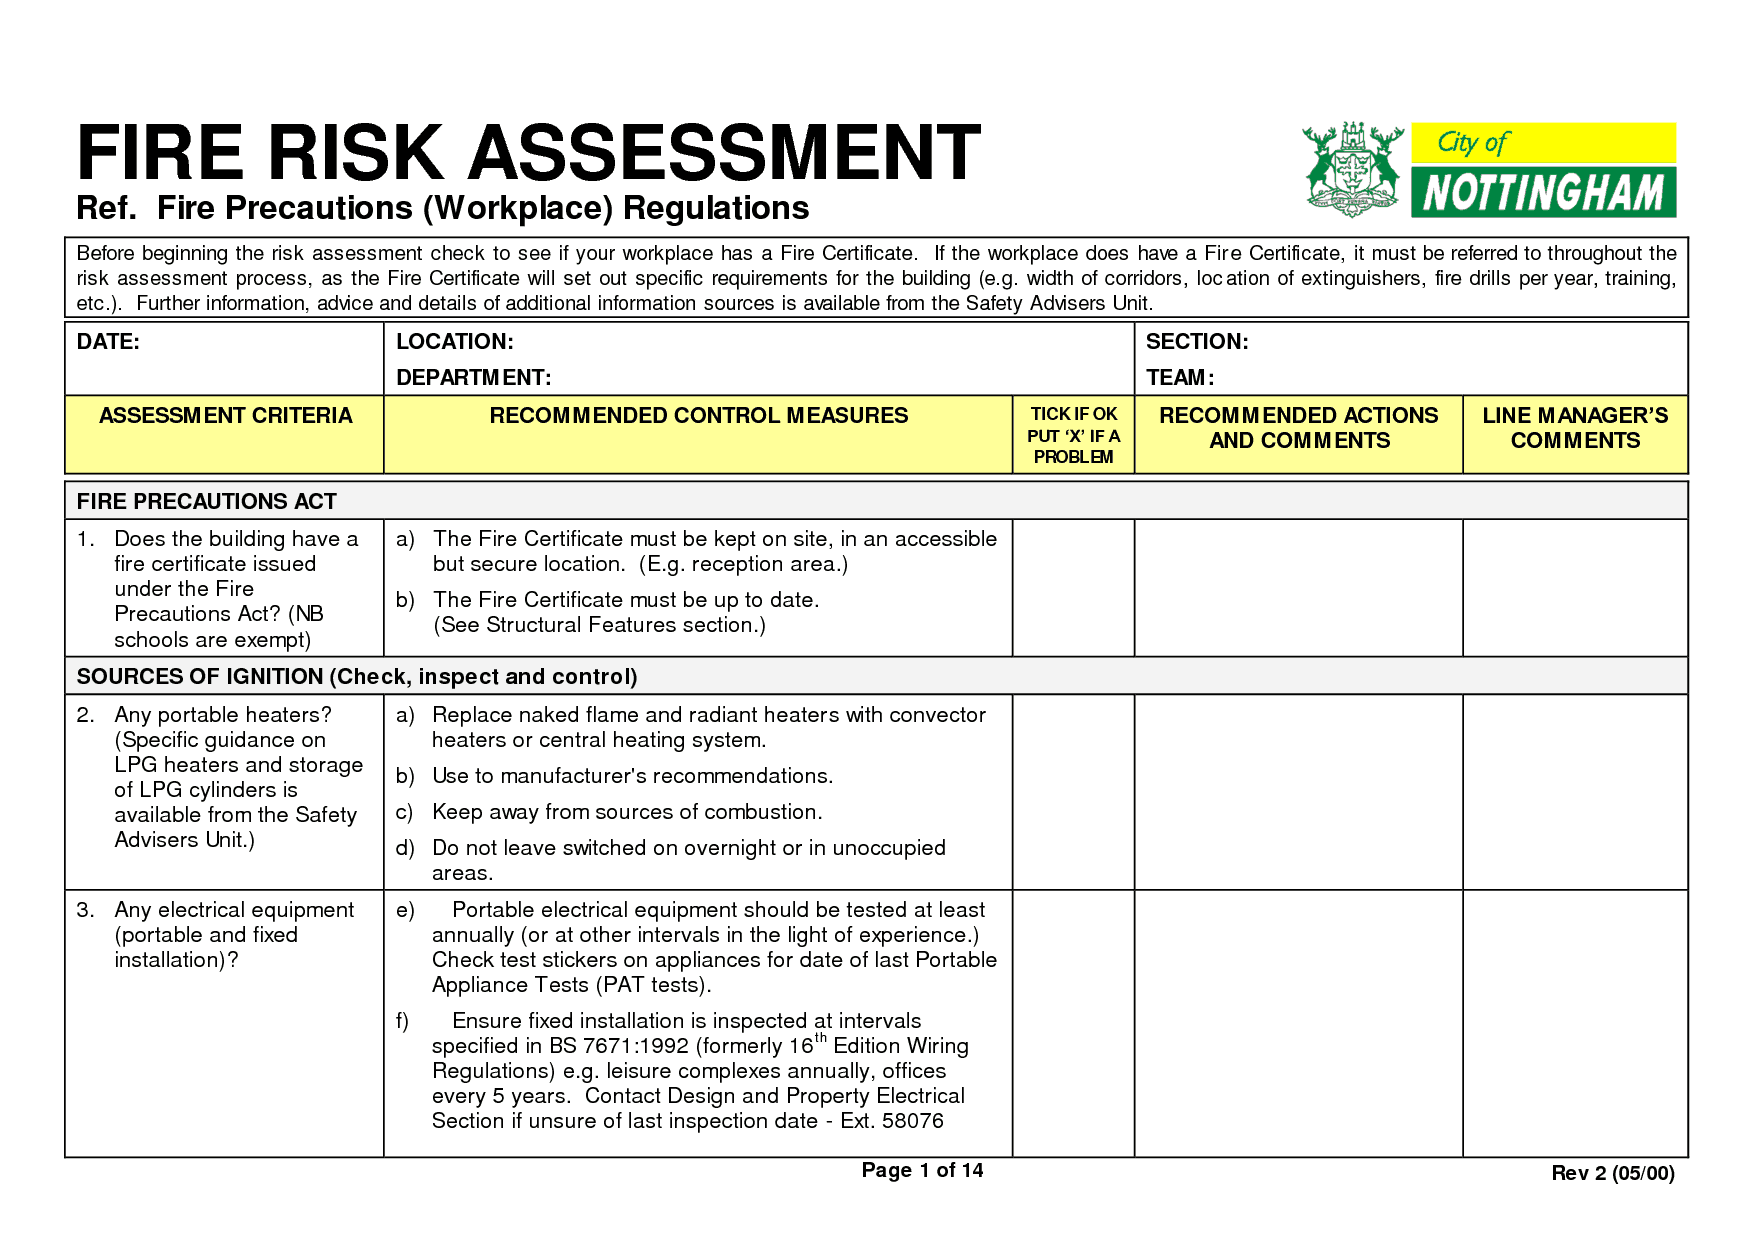 Fire Risk Assessment Form Sample. Fire Risk Assessment Form101